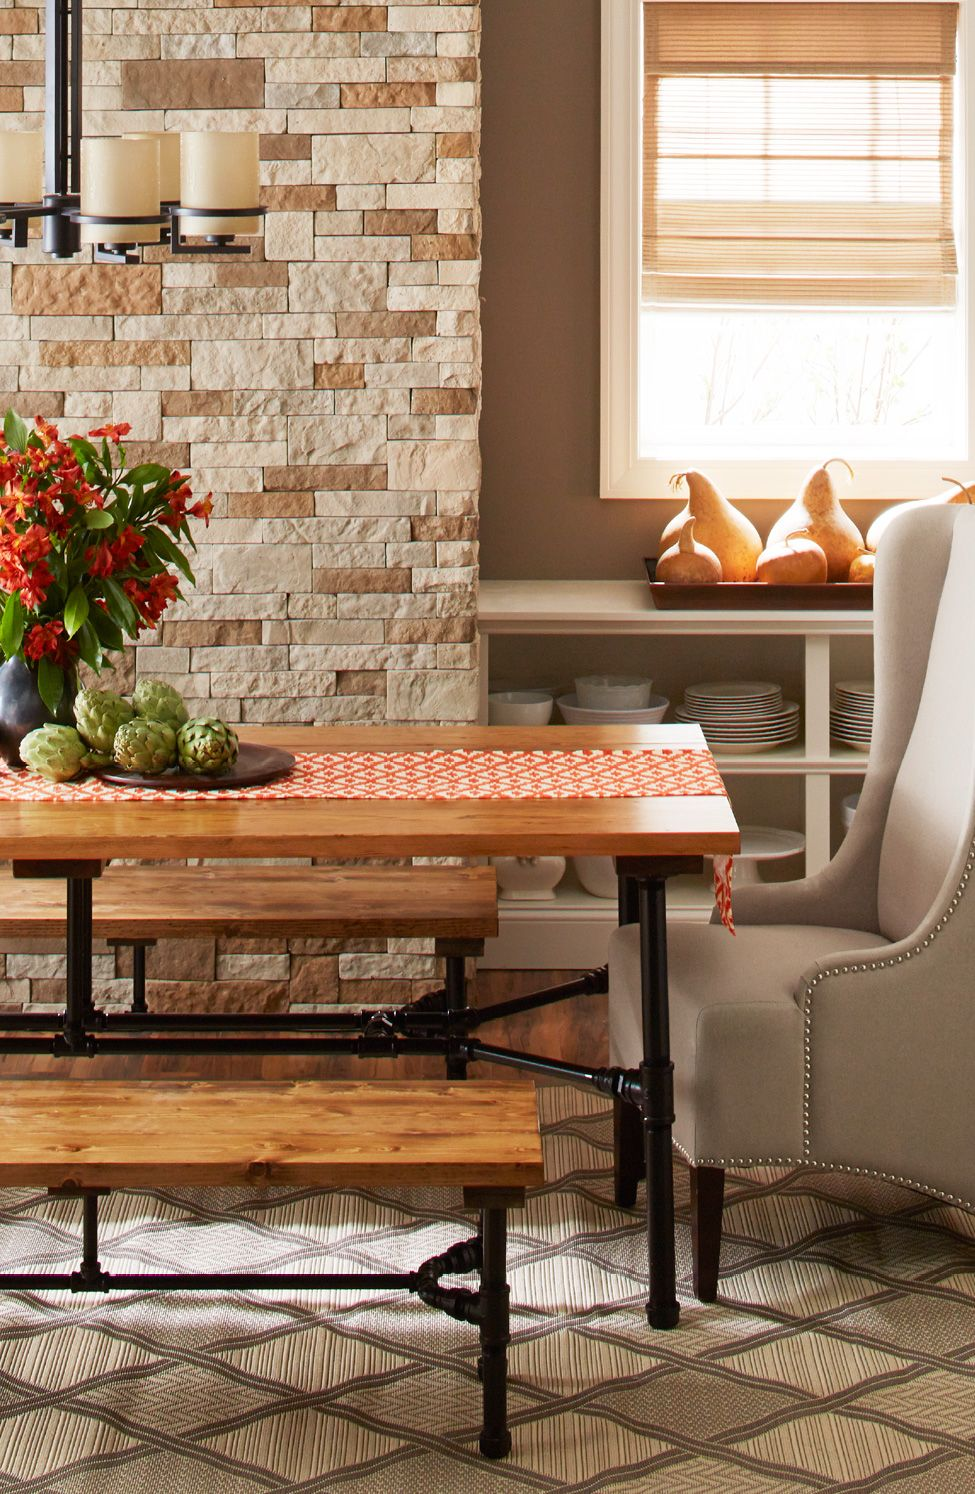 Kitchen table benches  Style meets utility in this harvest table and benches featuring